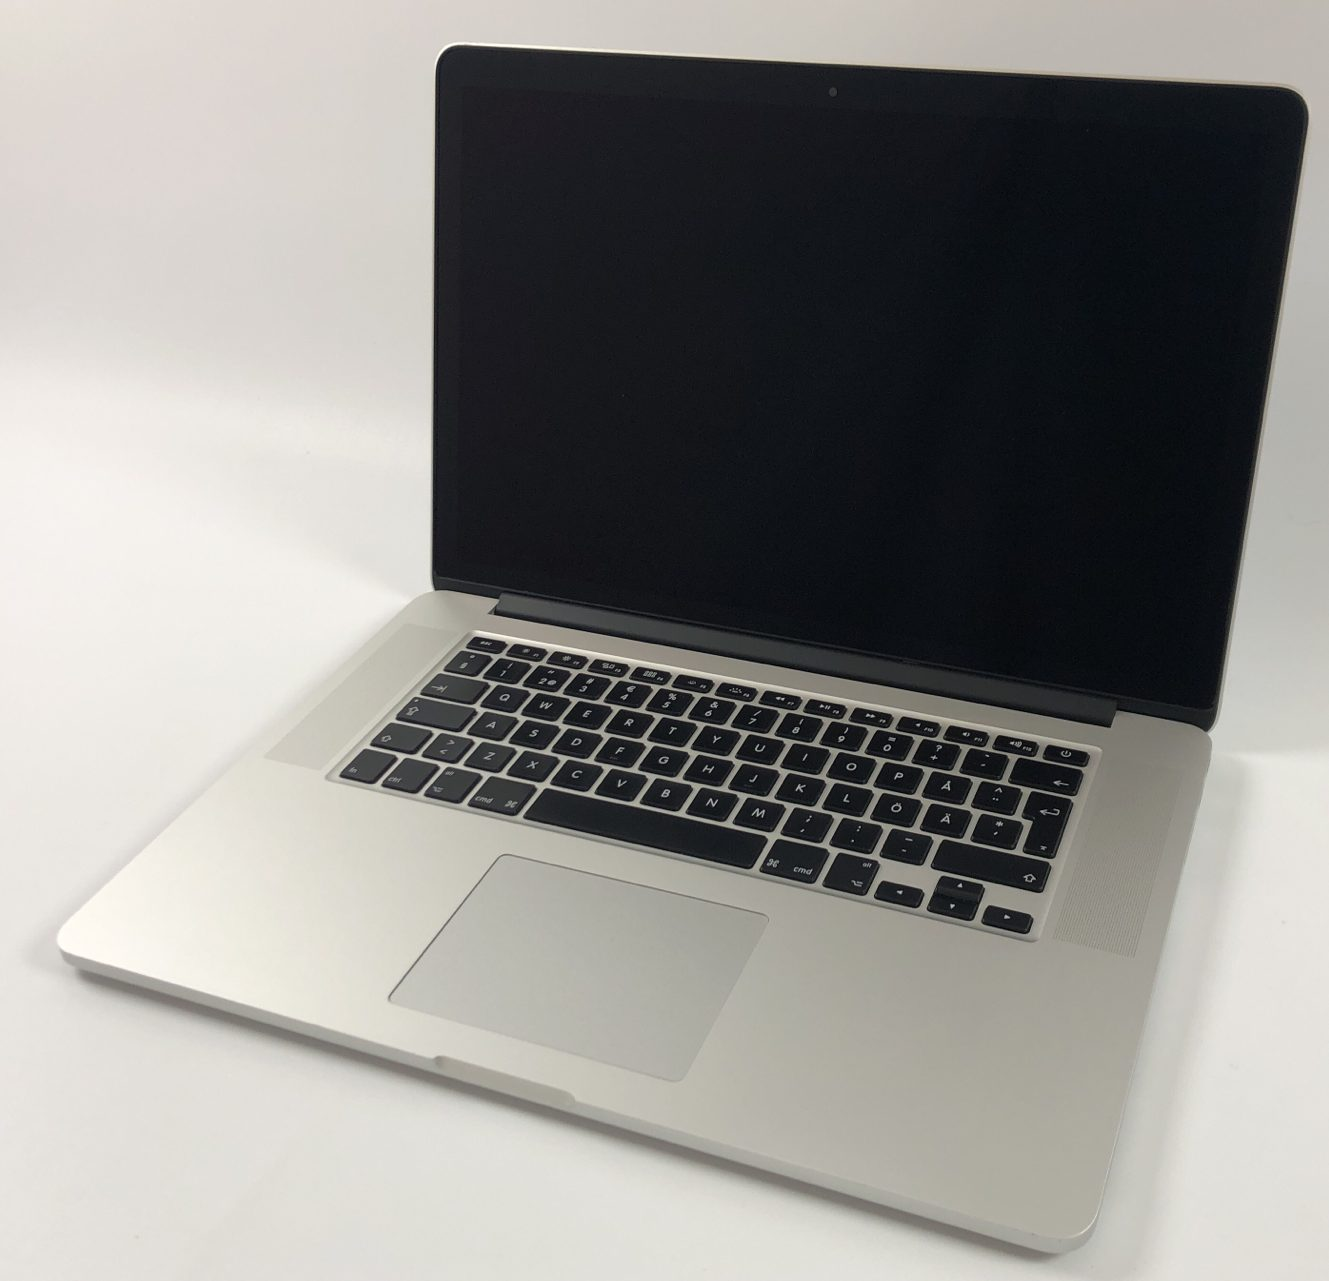 "MacBook Pro Retina 15"" Mid 2014 (Intel Quad-Core i7 2.5 GHz 16 GB RAM 512 GB SSD), Intel Quad-Core i7 2.5 GHz, 16 GB RAM, 512 GB SSD, Kuva 1"